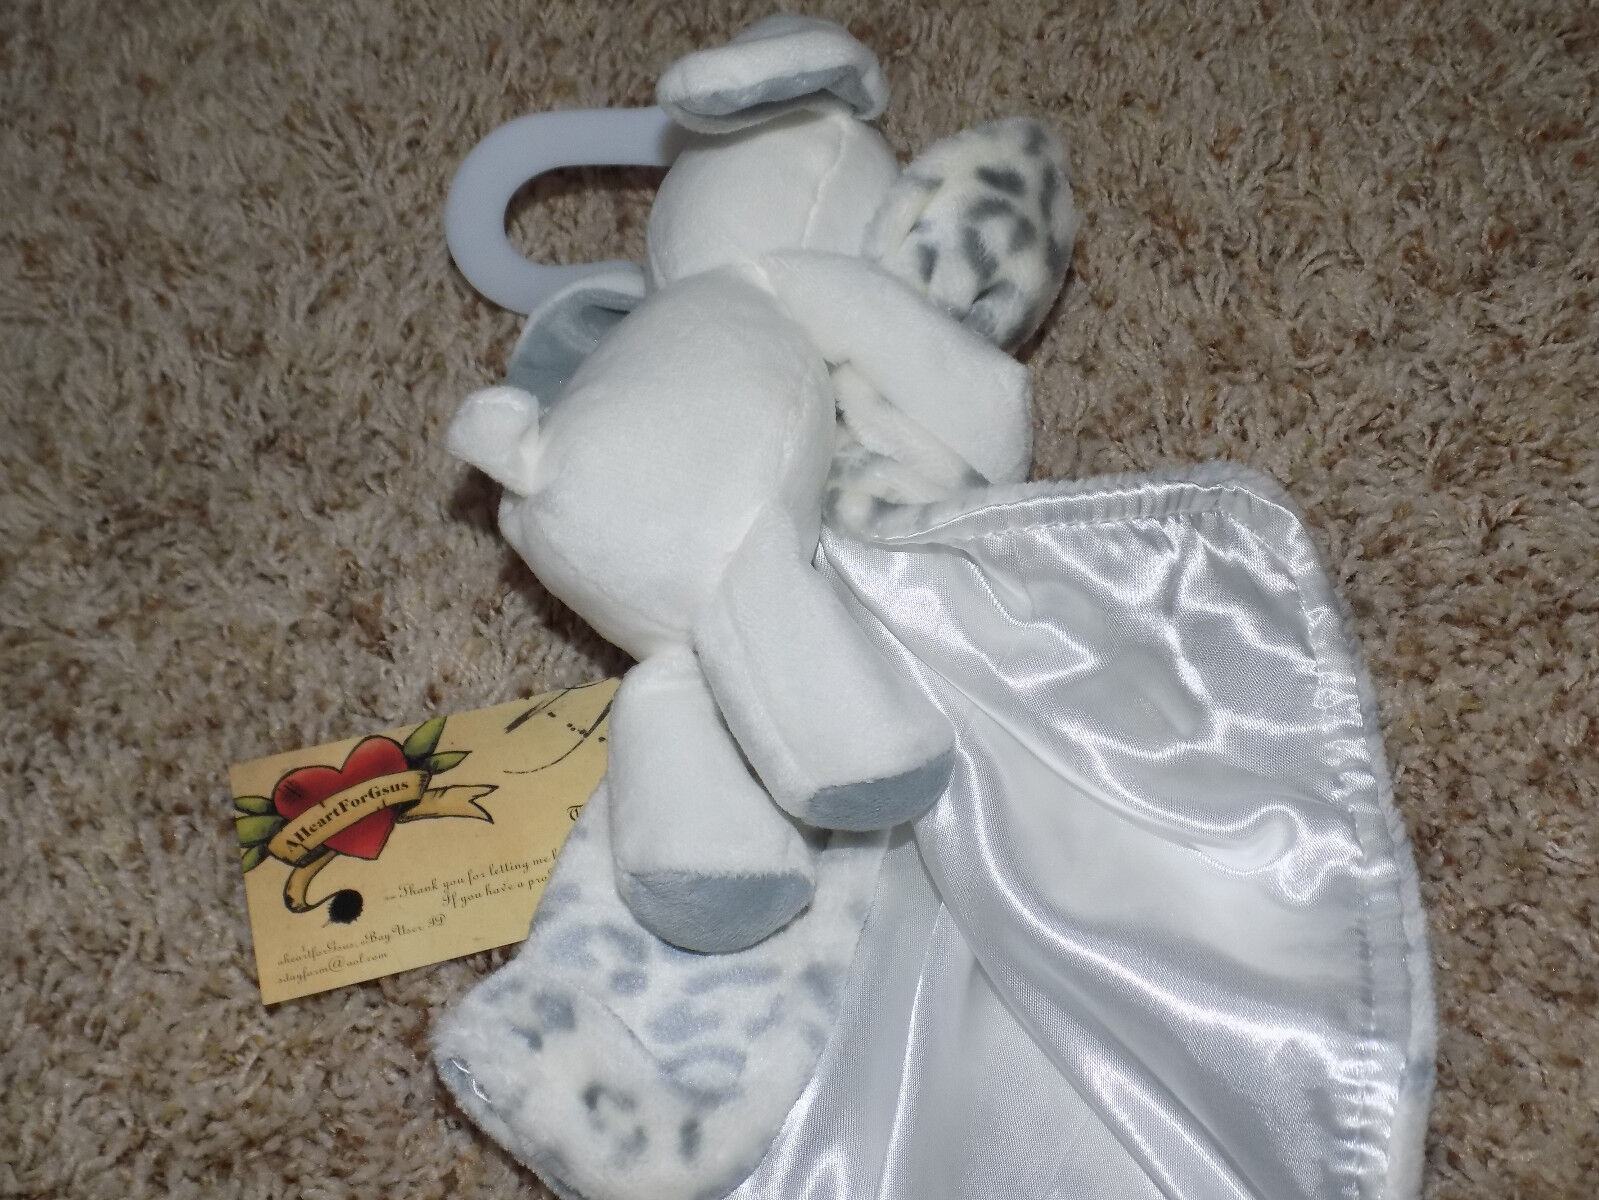 SECURITY BLANKET BABY STARTERS LEOPARD JUNGLE CAT GRAY WH BUNNY RABBIT FULL BODY